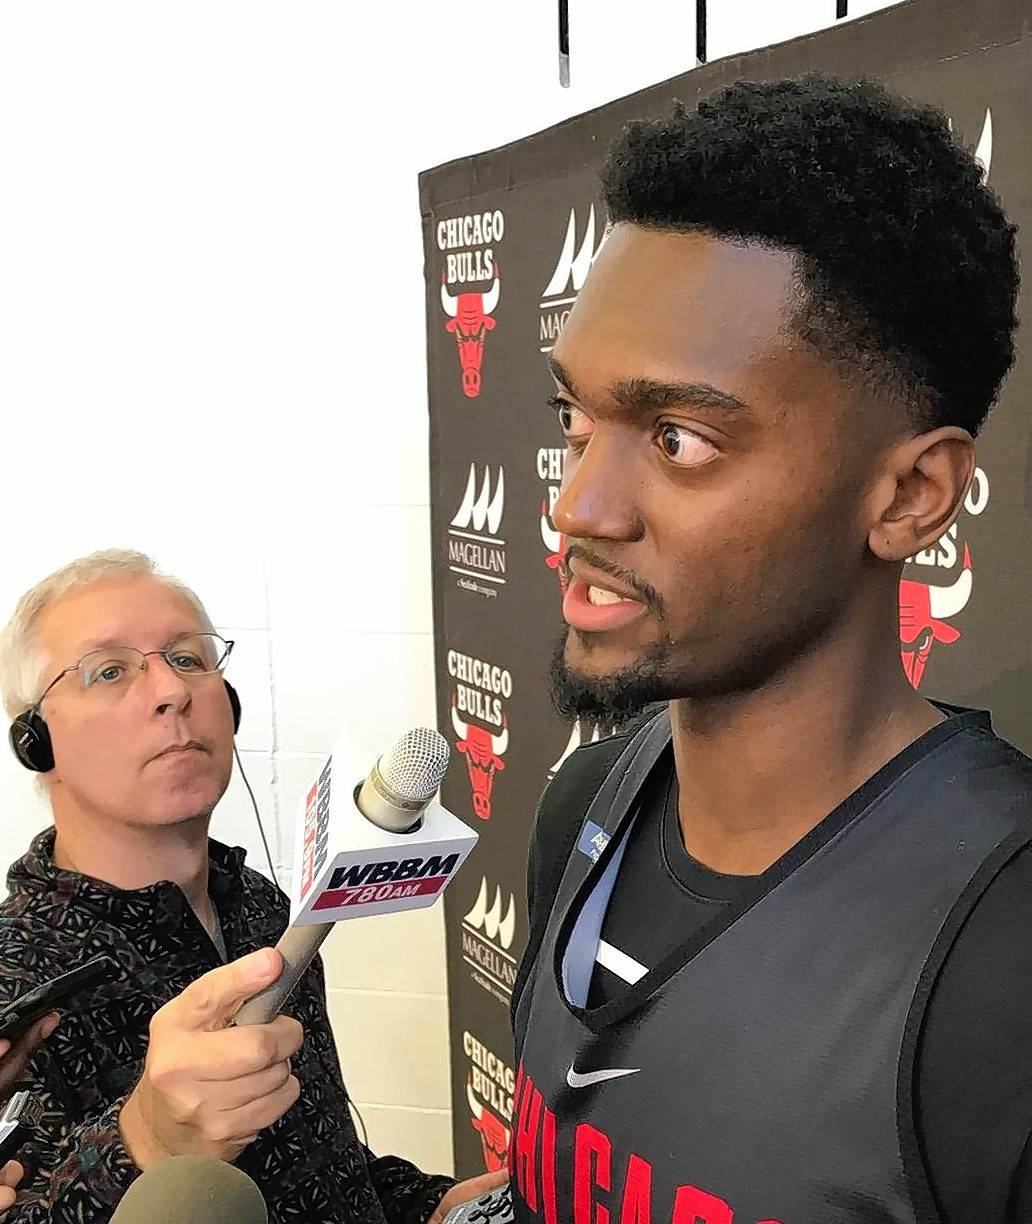 Chicago Bulls forward Bobby Portis says he's happy to be back and playing basketball again. Portis had 21 points and 13 rebounds Tuesday in Toronto in his first game after serving an eight-game suspension.